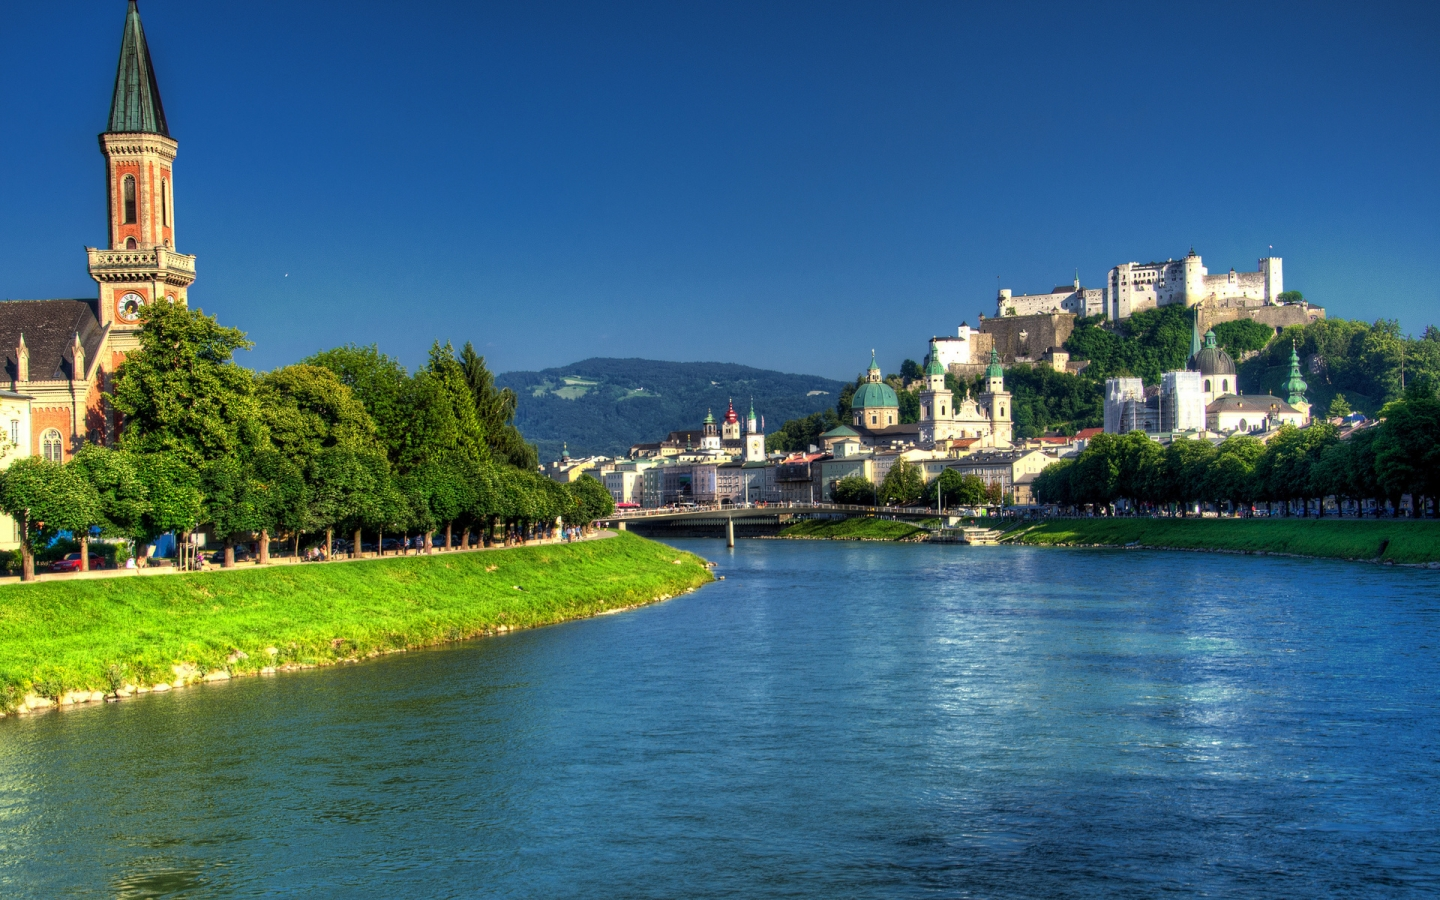 Salzach River Salzburg  for 1440 x 900 widescreen resolution